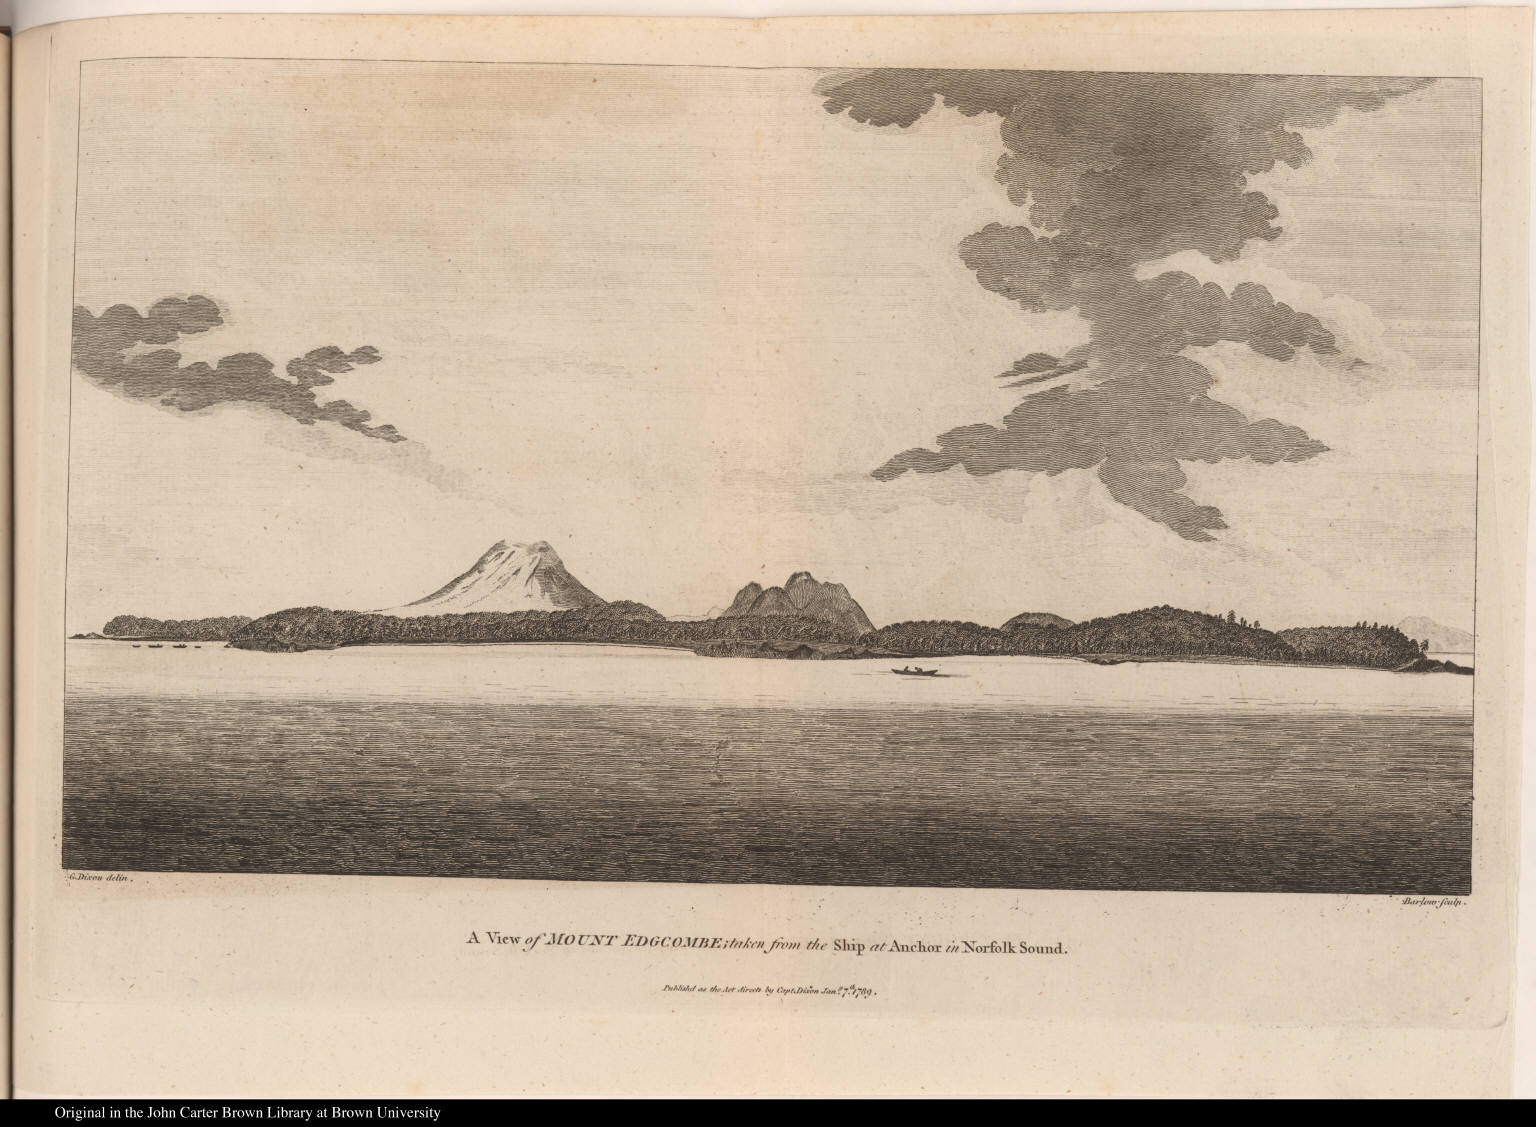 A View of Mount Edgcombe; taken from the Ship at Anchor in Norfolk Sound.